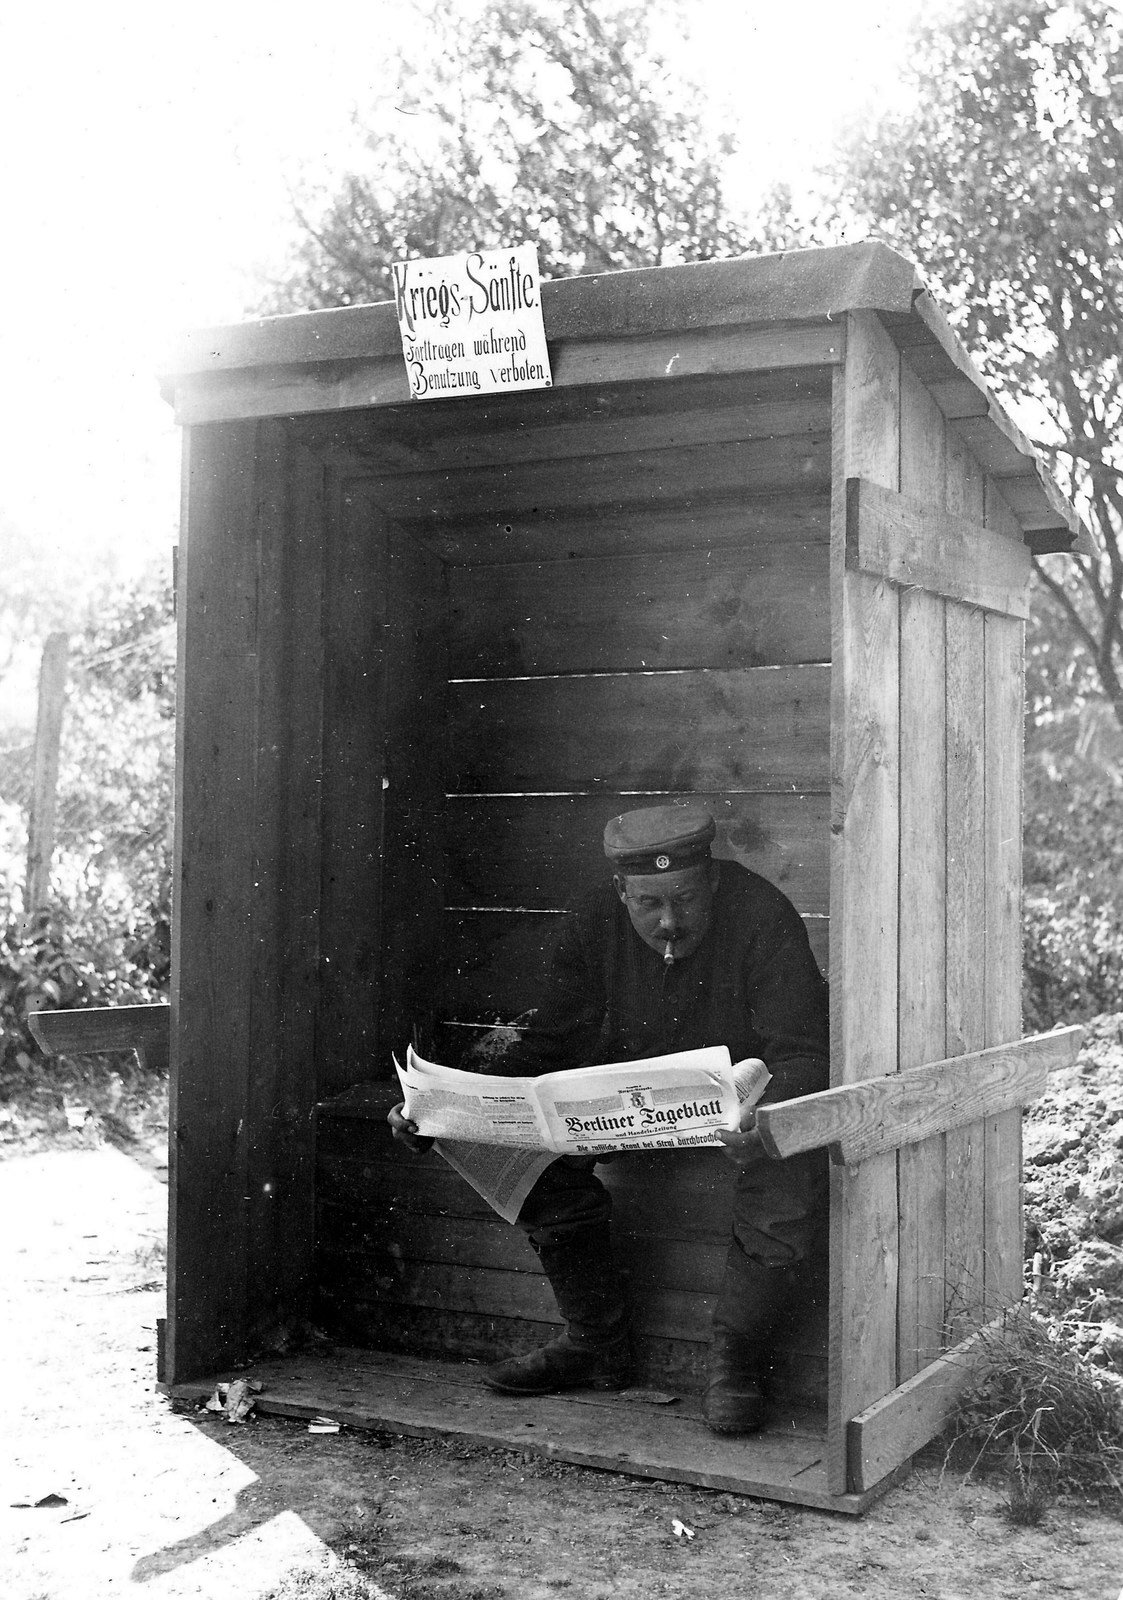 A soldier smoking a cigar and reading a newspaper while seated on a latrine , photographer unknown, Rolf Kranz  / Europeana 1914-1918, CC BY-SA